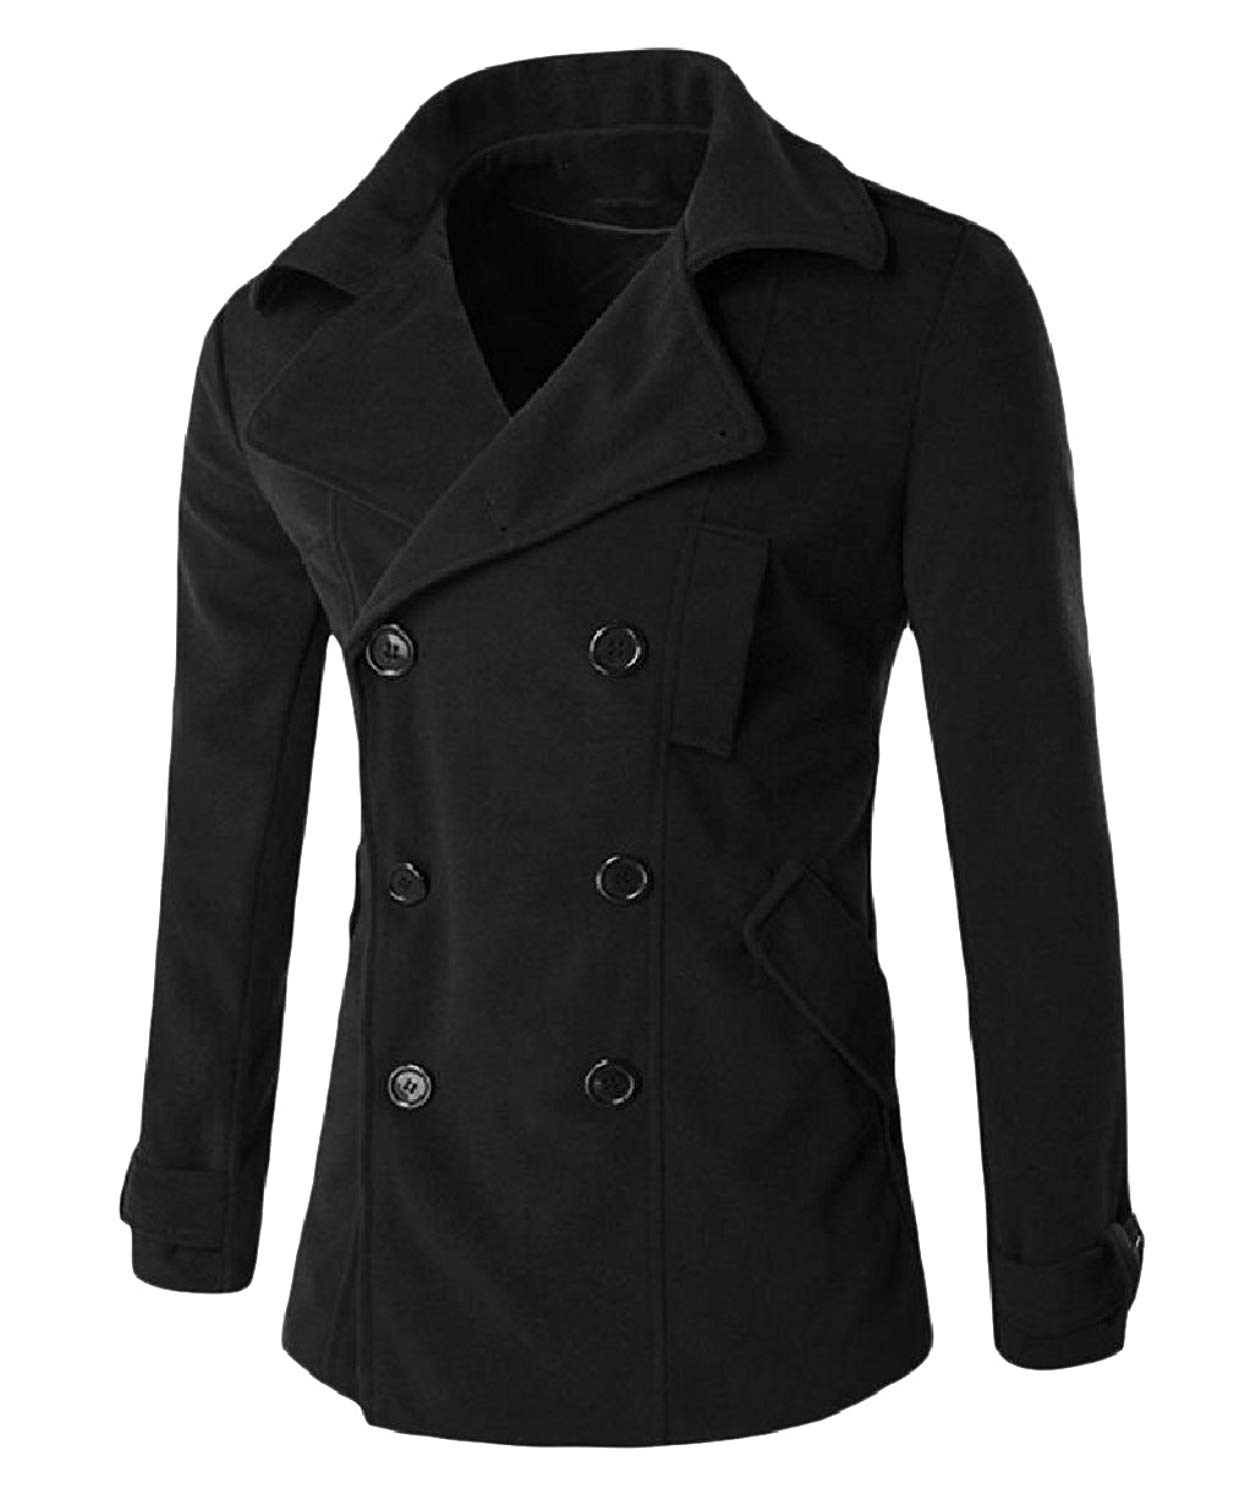 Zimaes-Men Fashion Double-Breasted Wild Classic-Fit Basic Style Overcoat